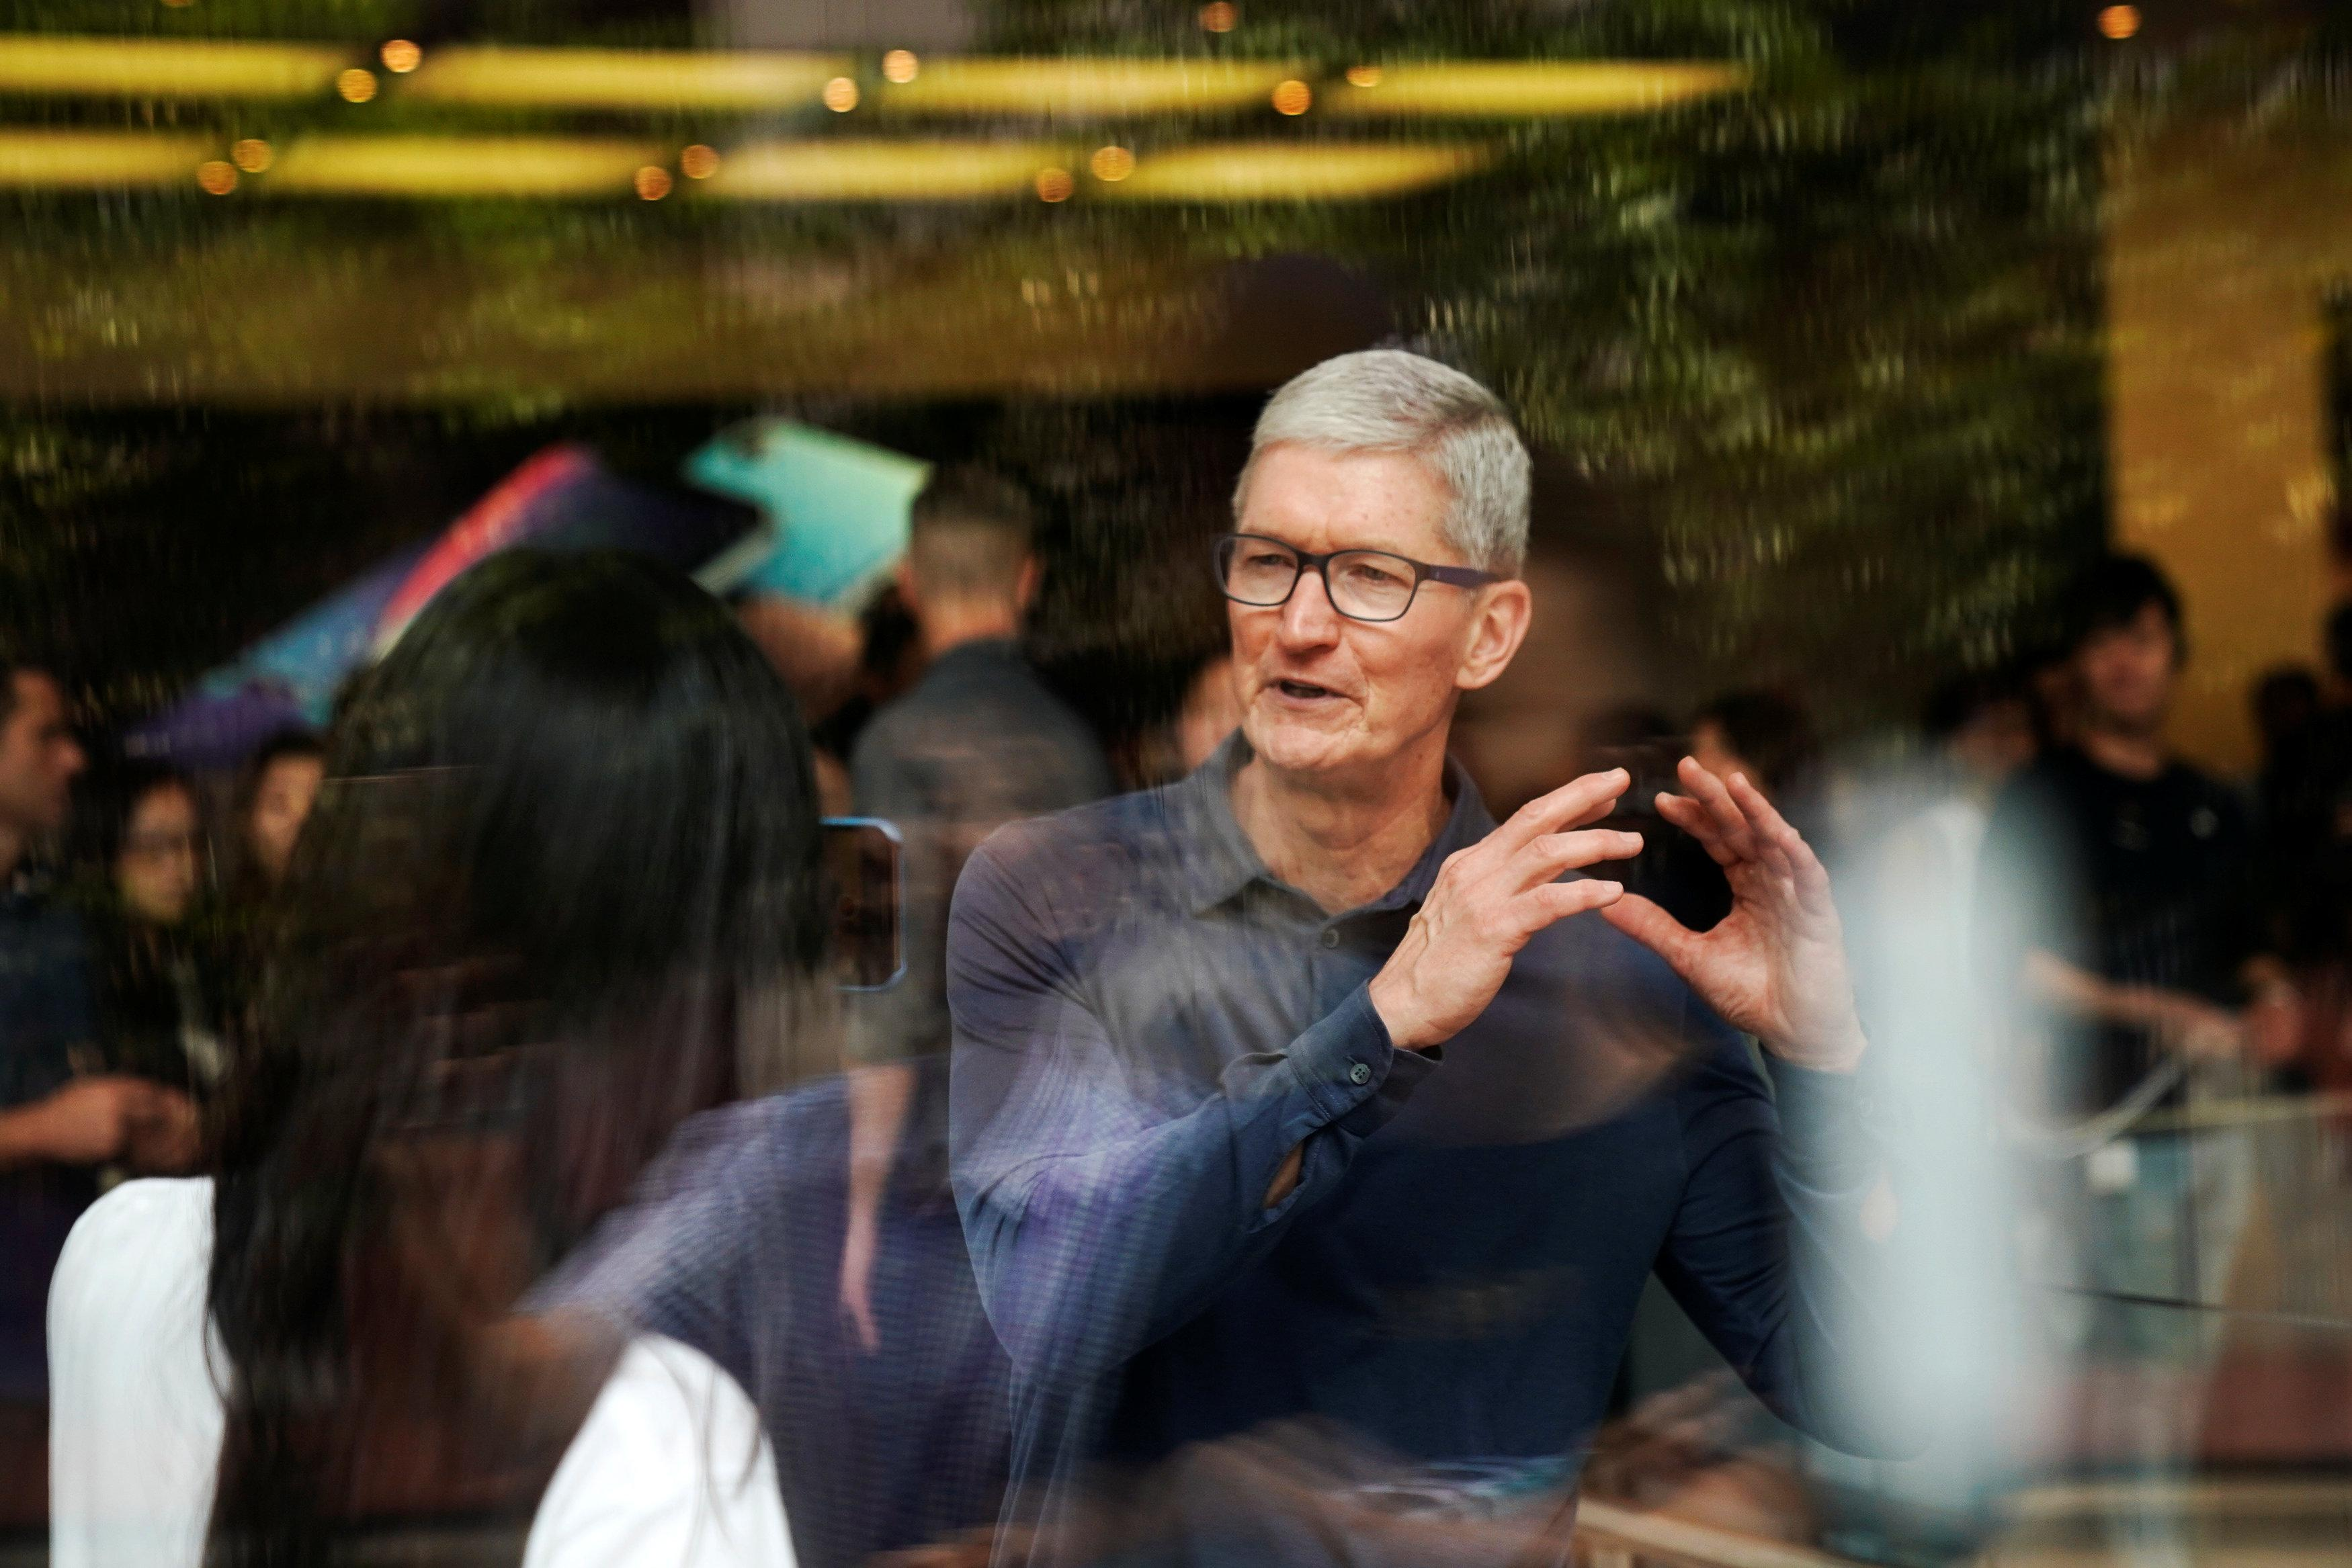 Apple's Cook backs strong privacy laws in Europe, U.S. - remarks